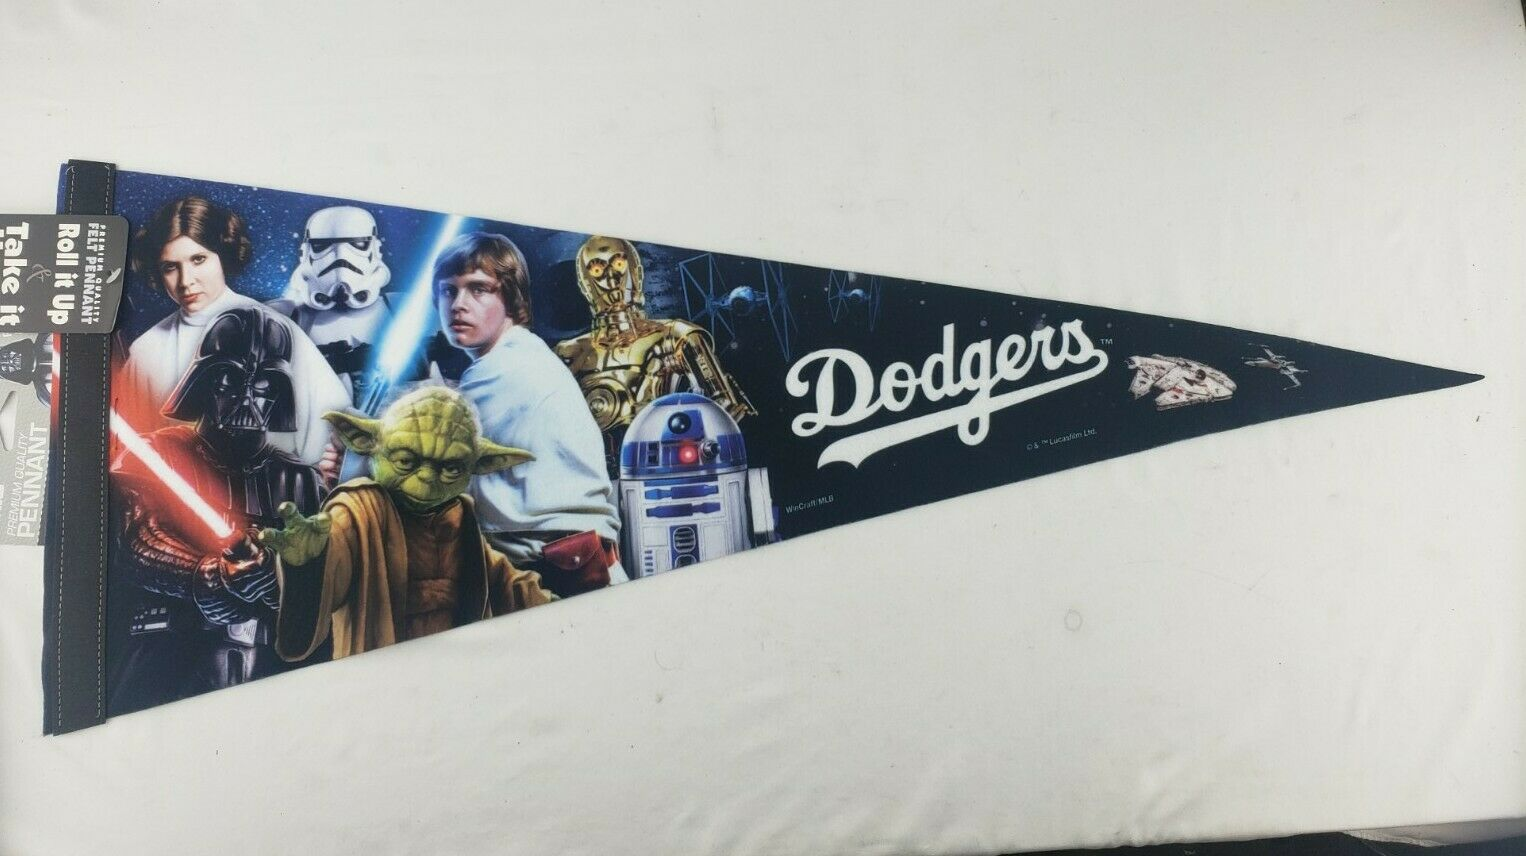 The Official Star Wars Pennant of The Baseball World Series Champion LA Dodgers